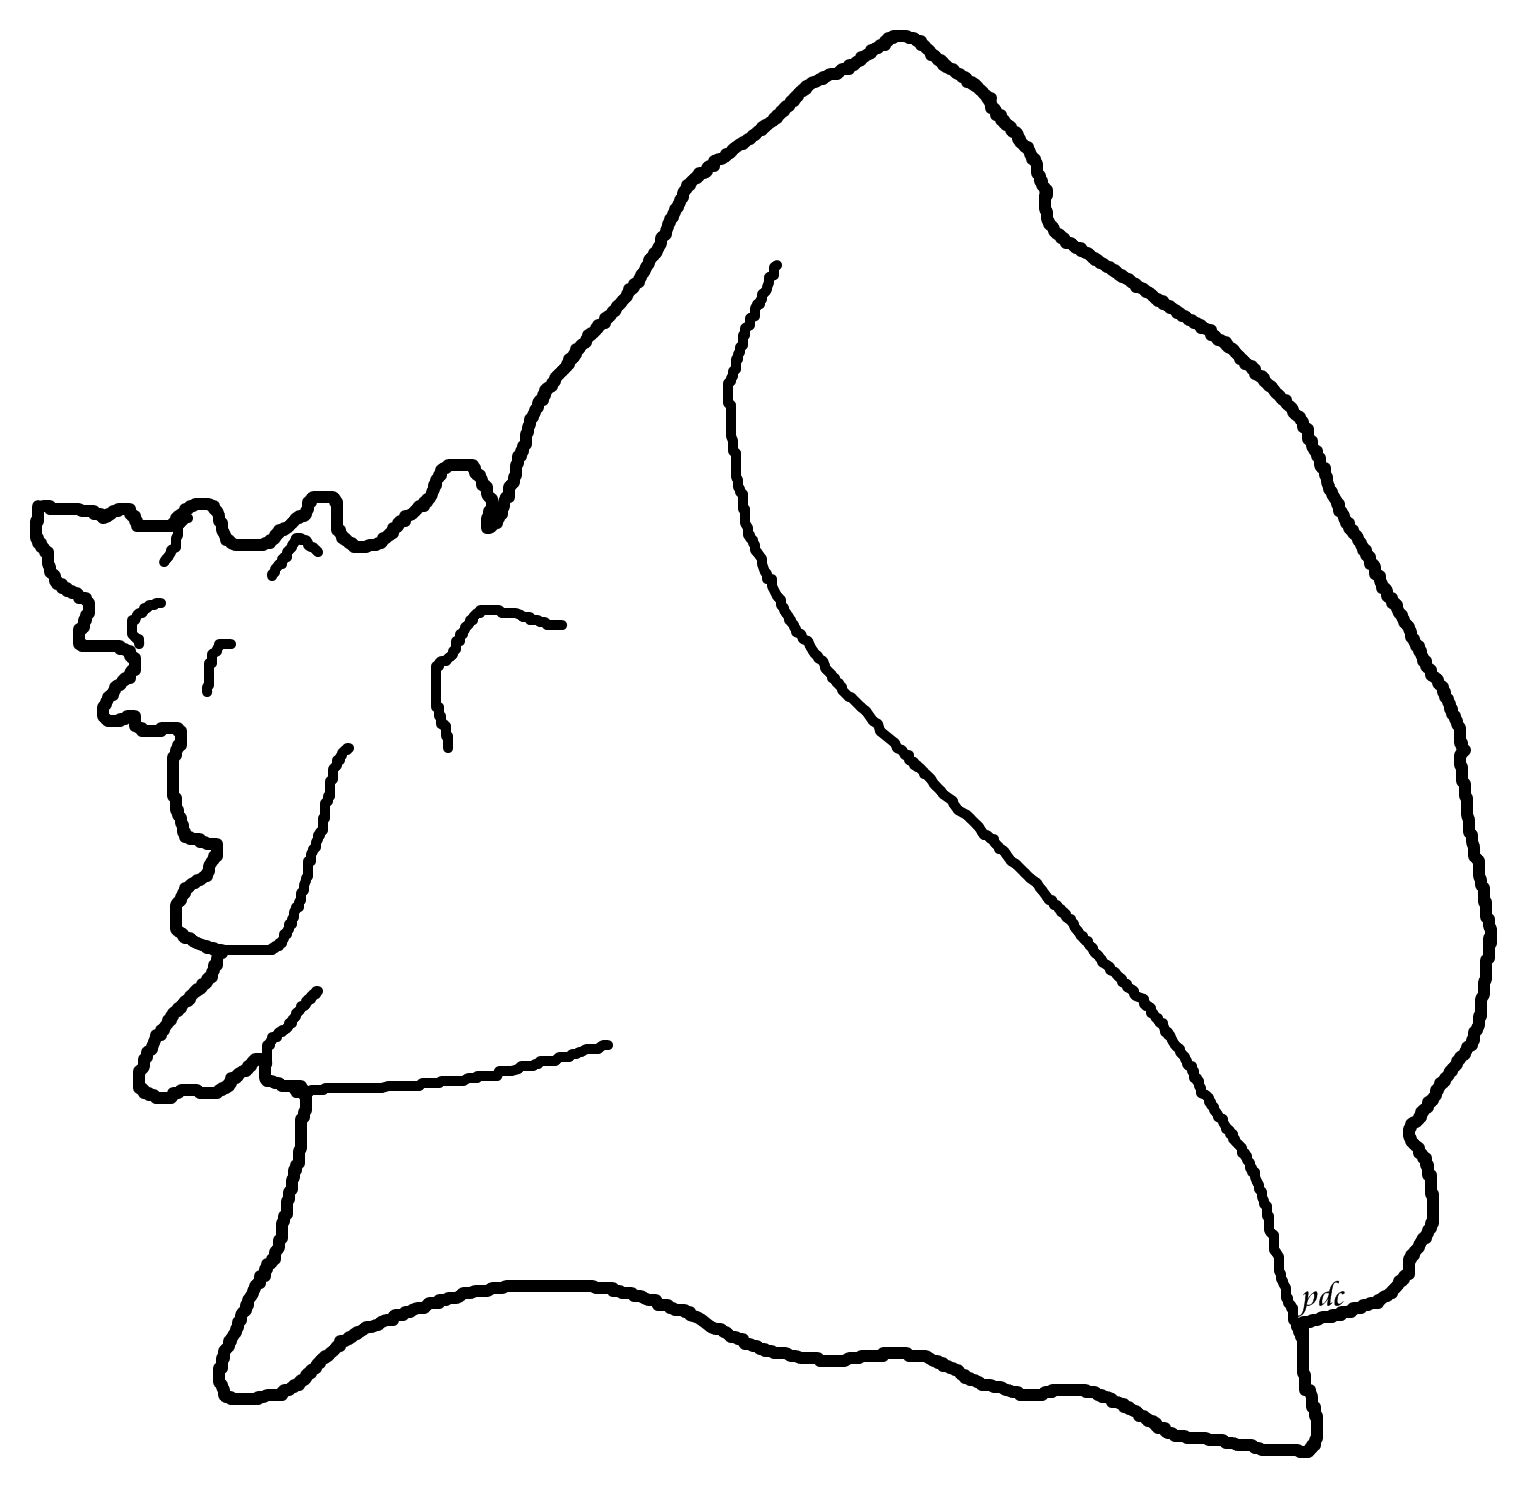 How To Draw Conch Shell